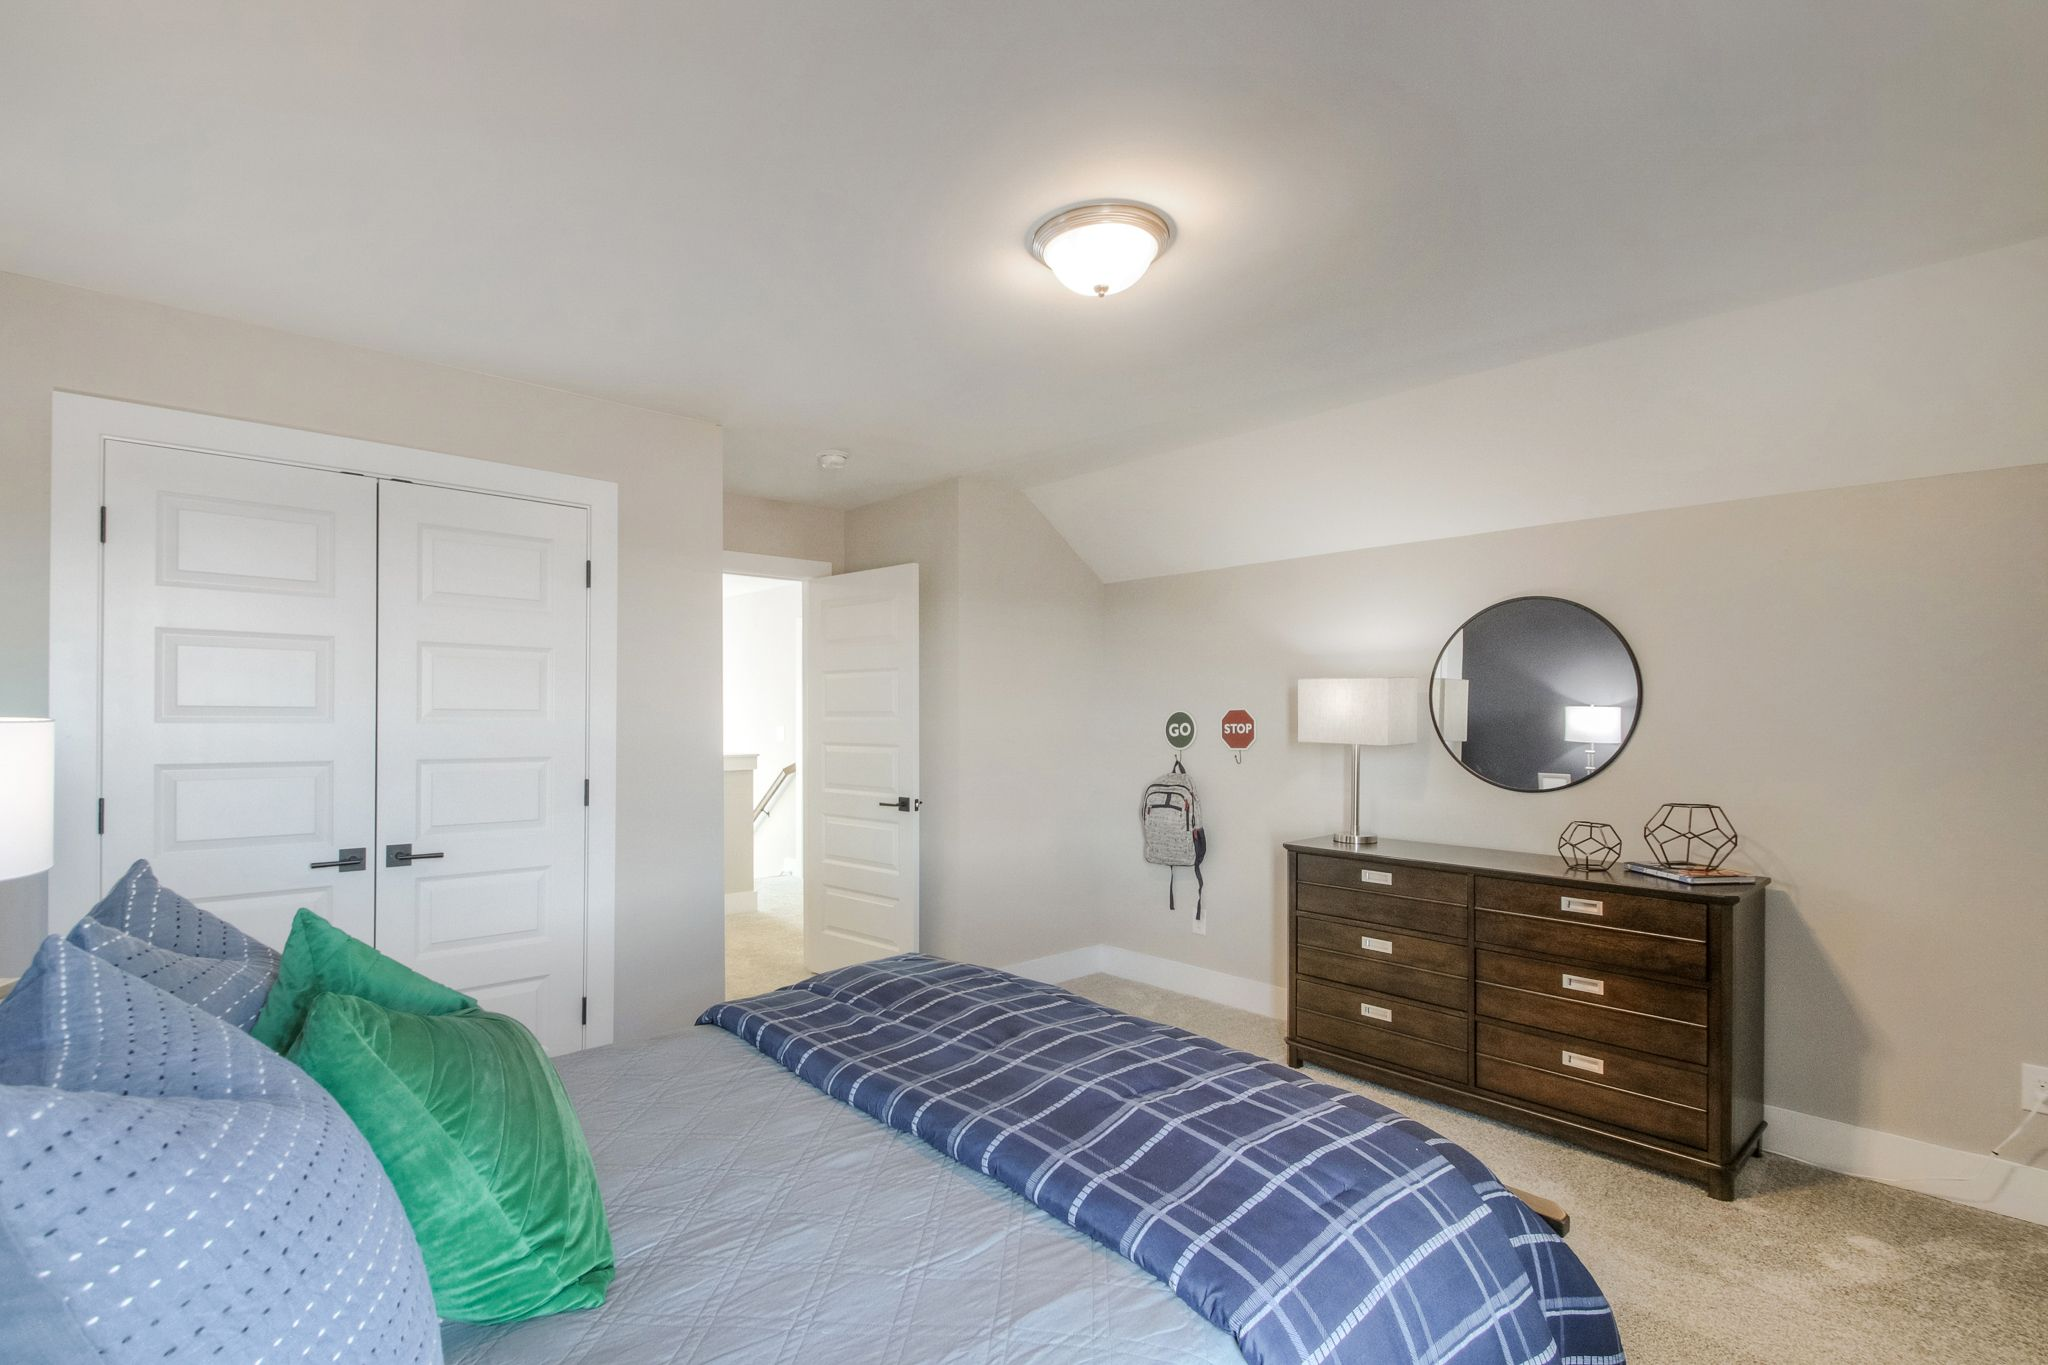 Bedroom featured in The Kingsmont By Goodall Homes in Owensboro, KY